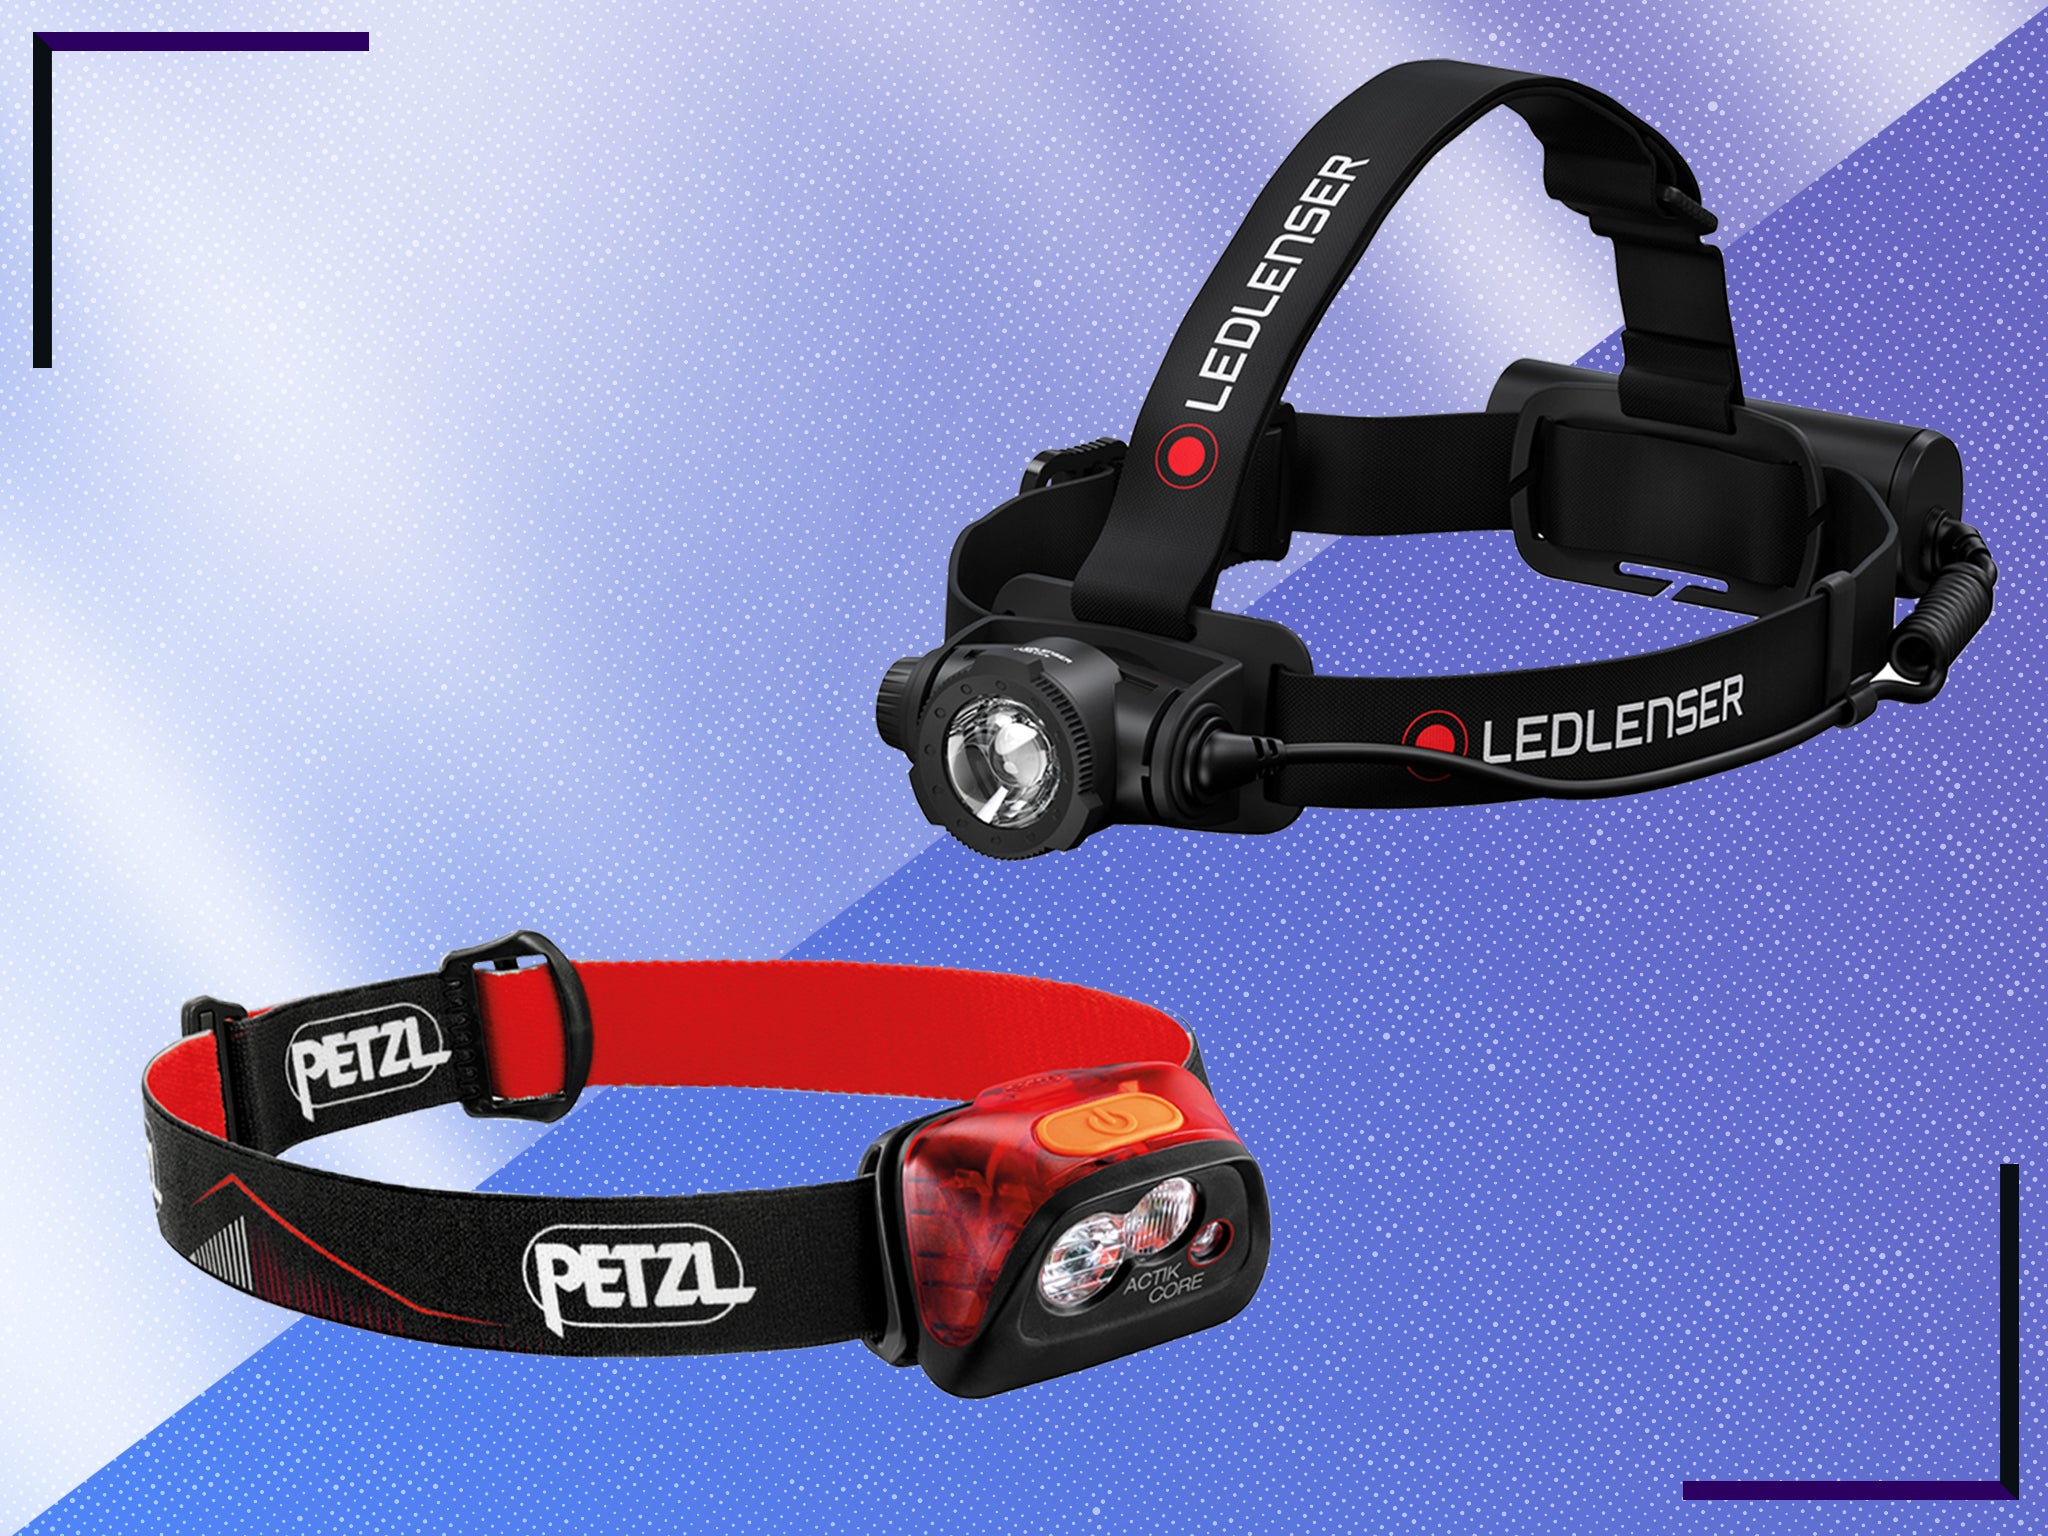 Best head torch 2021: Rechargeable and reliable | The ...